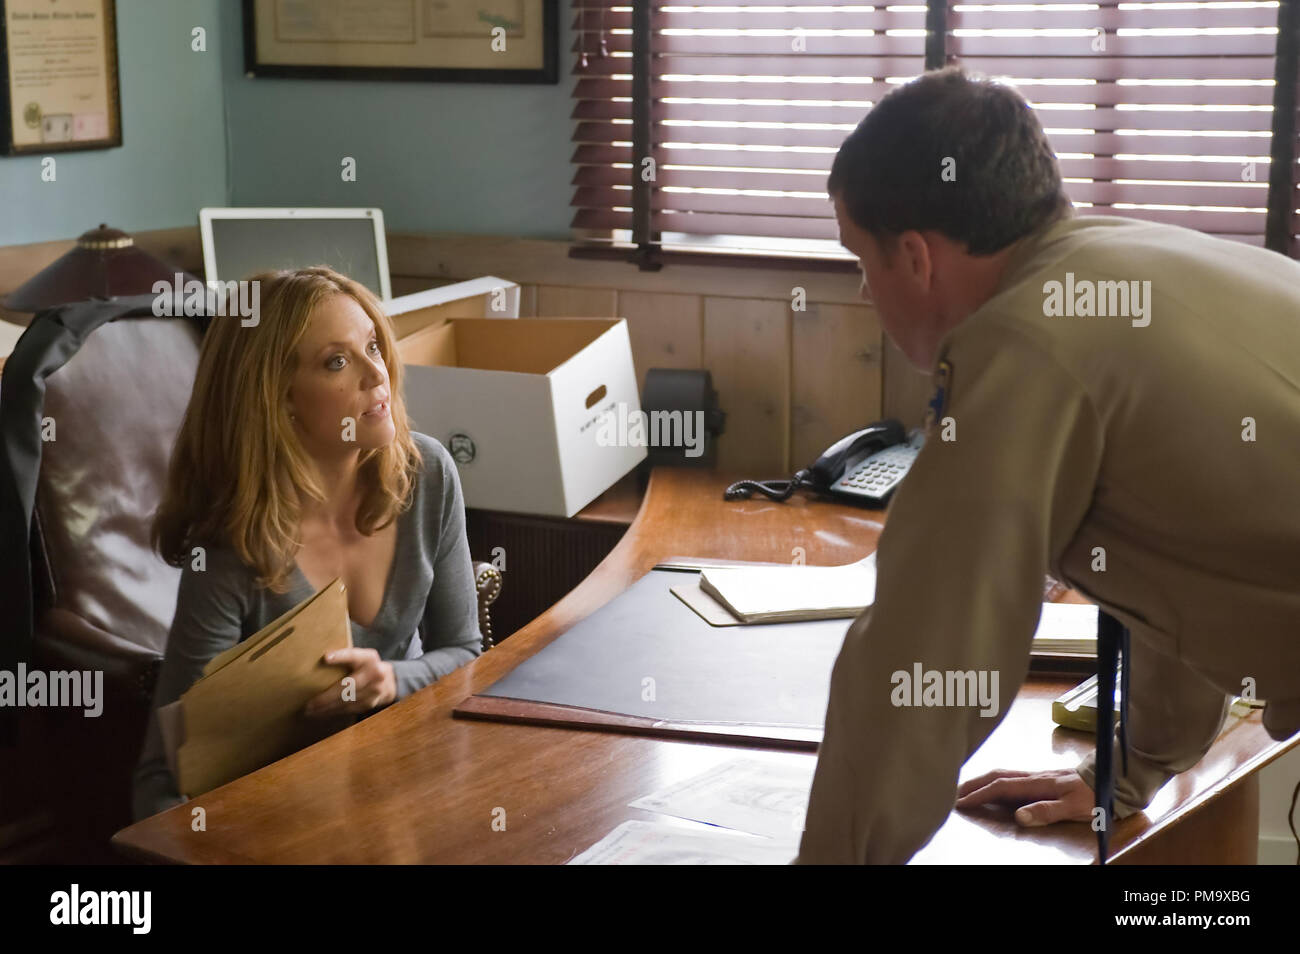 Ally Walker Hot ally stock photos & ally stock images - page 2 - alamy